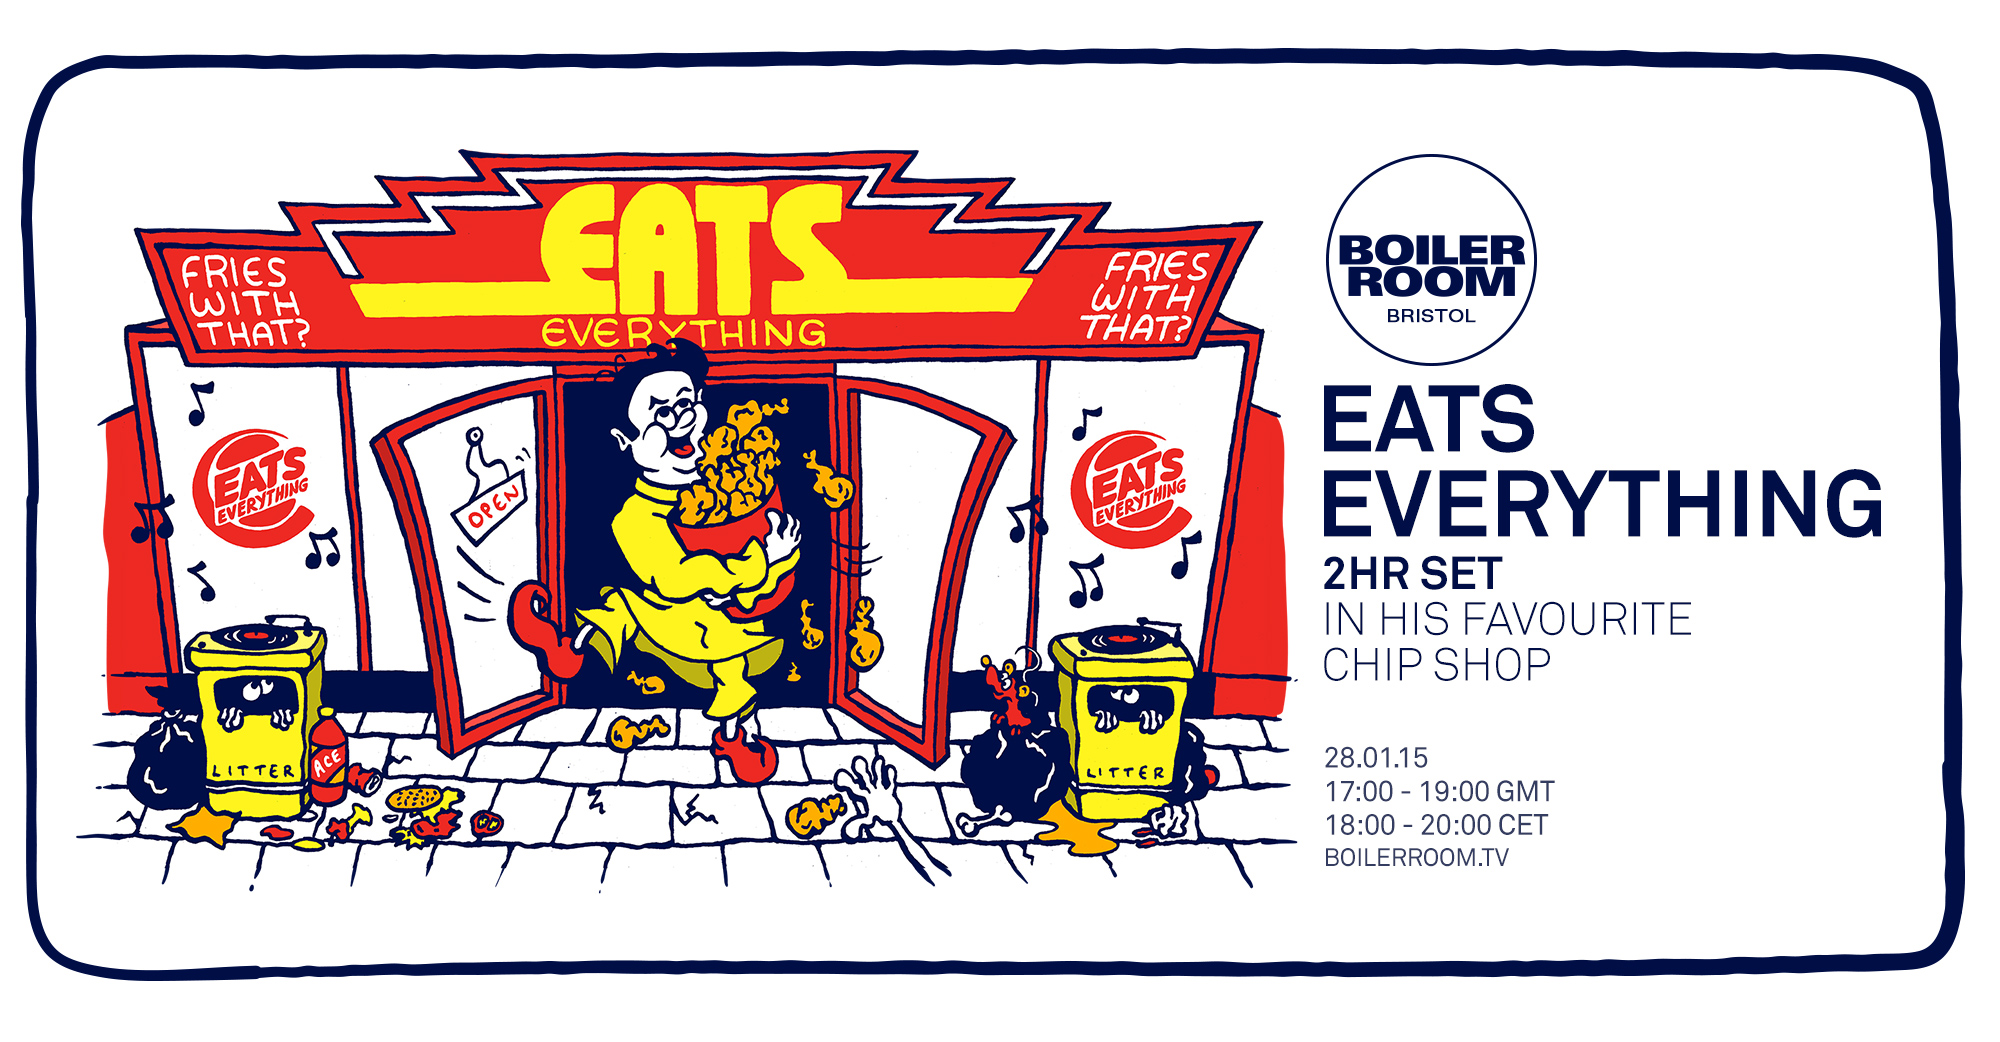 Eats Everything: Chip Shop Special Flyer Image